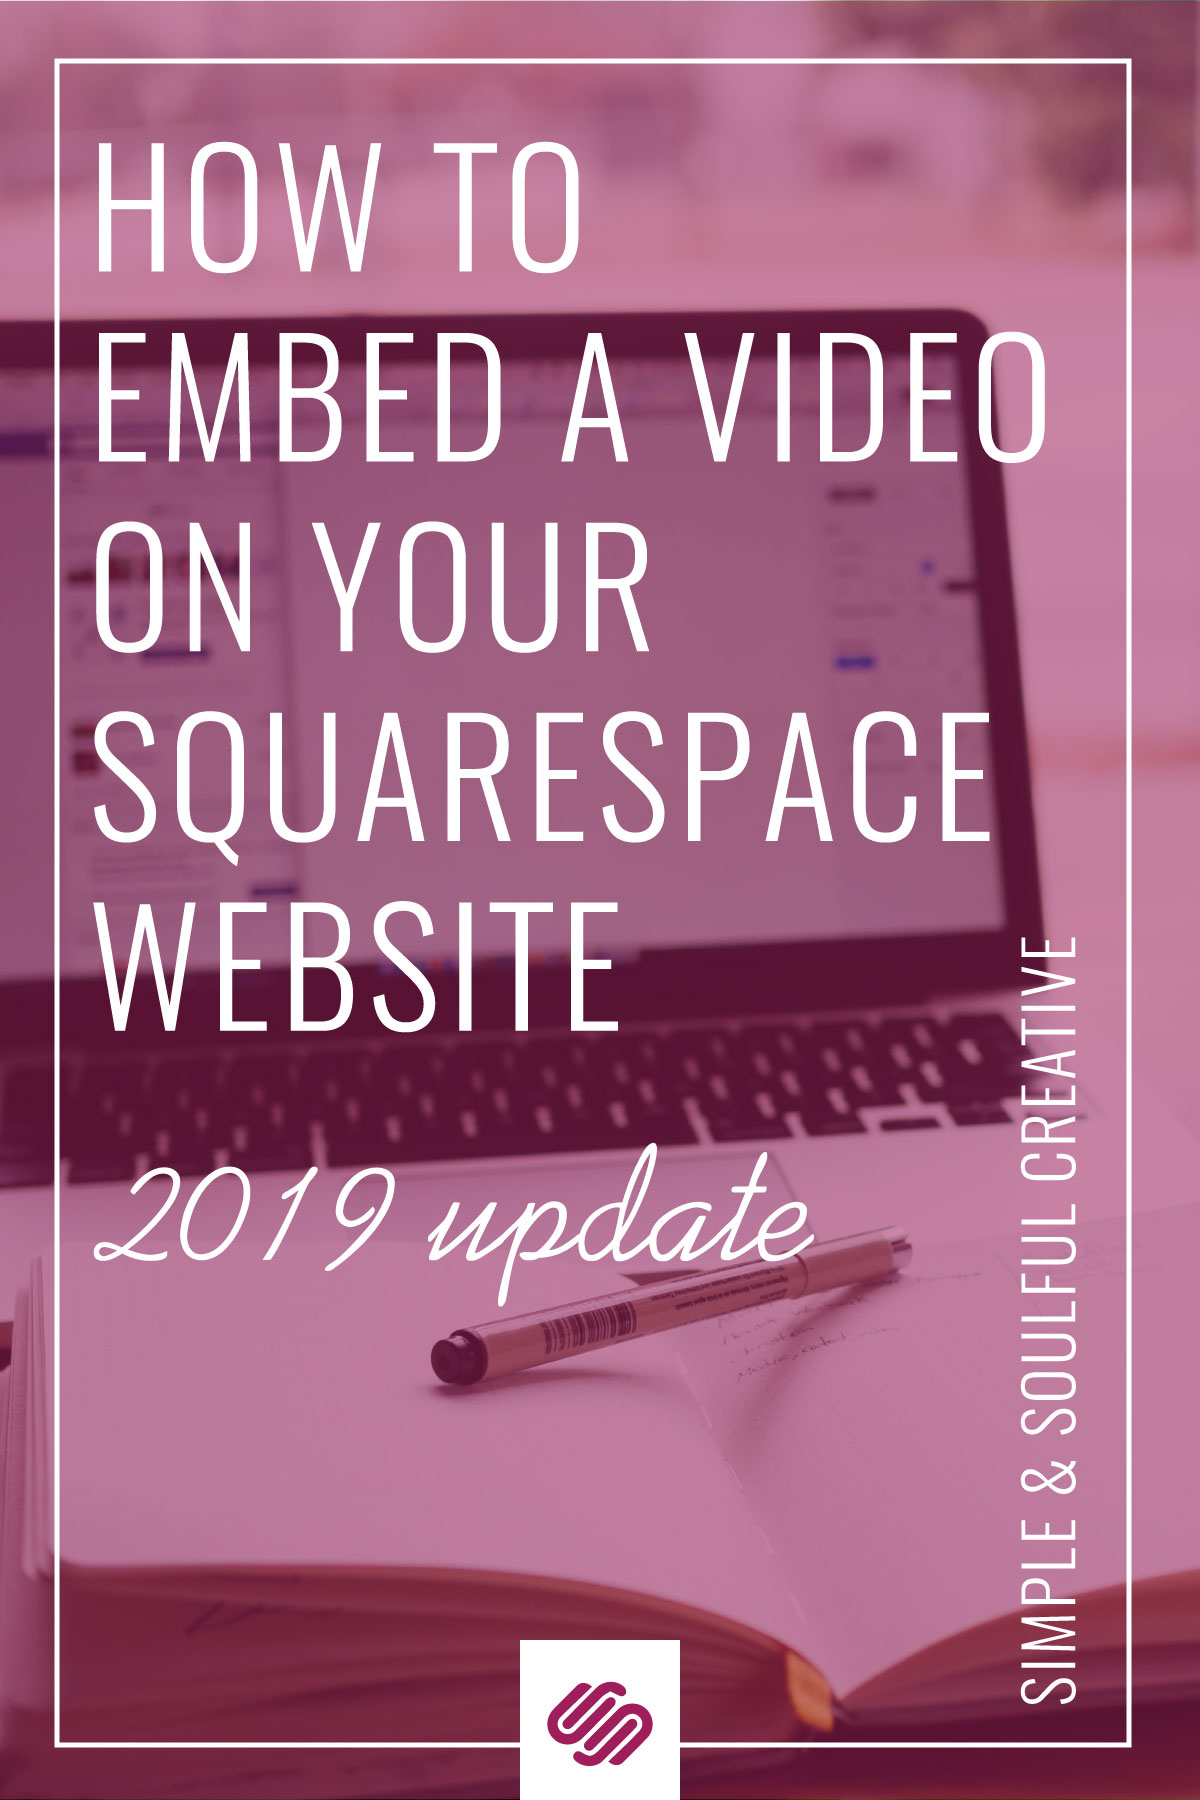 How To Embed A Video Onto Your Squarespace Site (the classy way